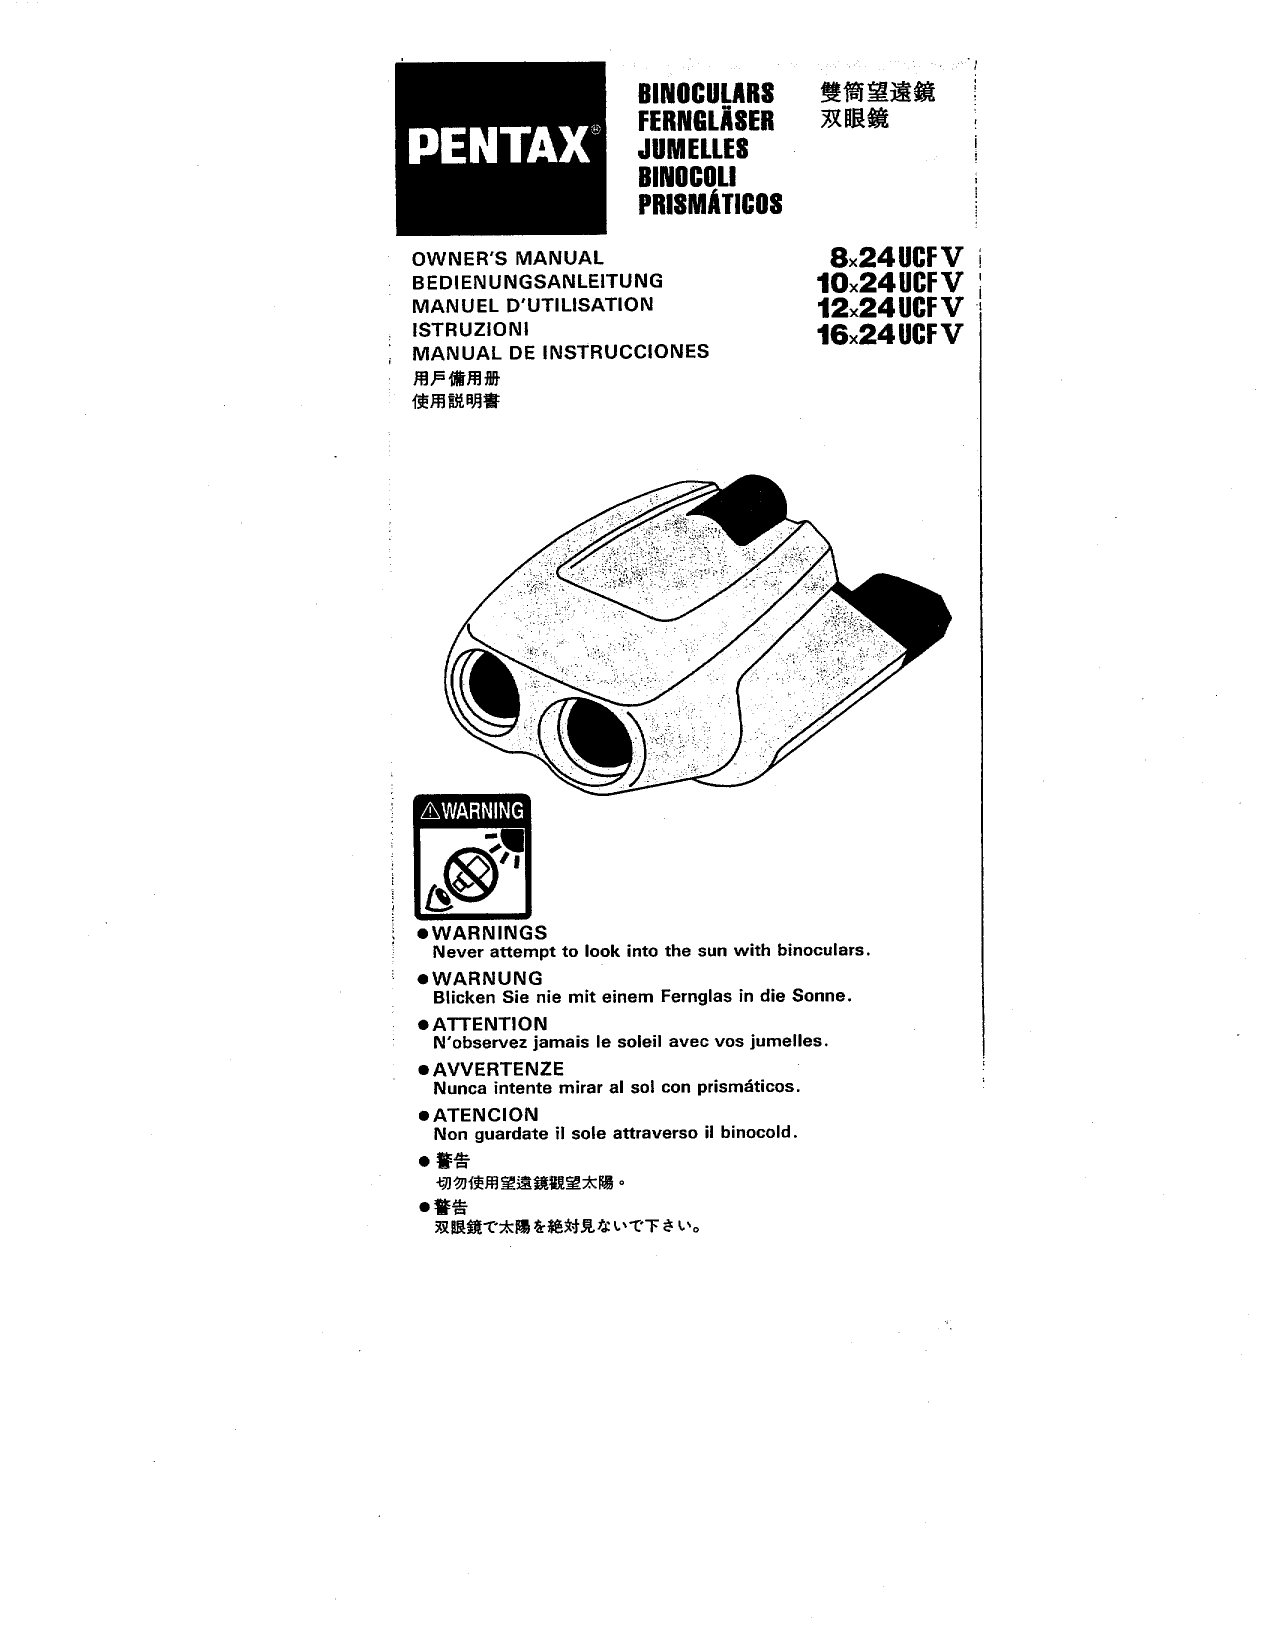 PDF manual for Pentax Binocular UCF 8x24